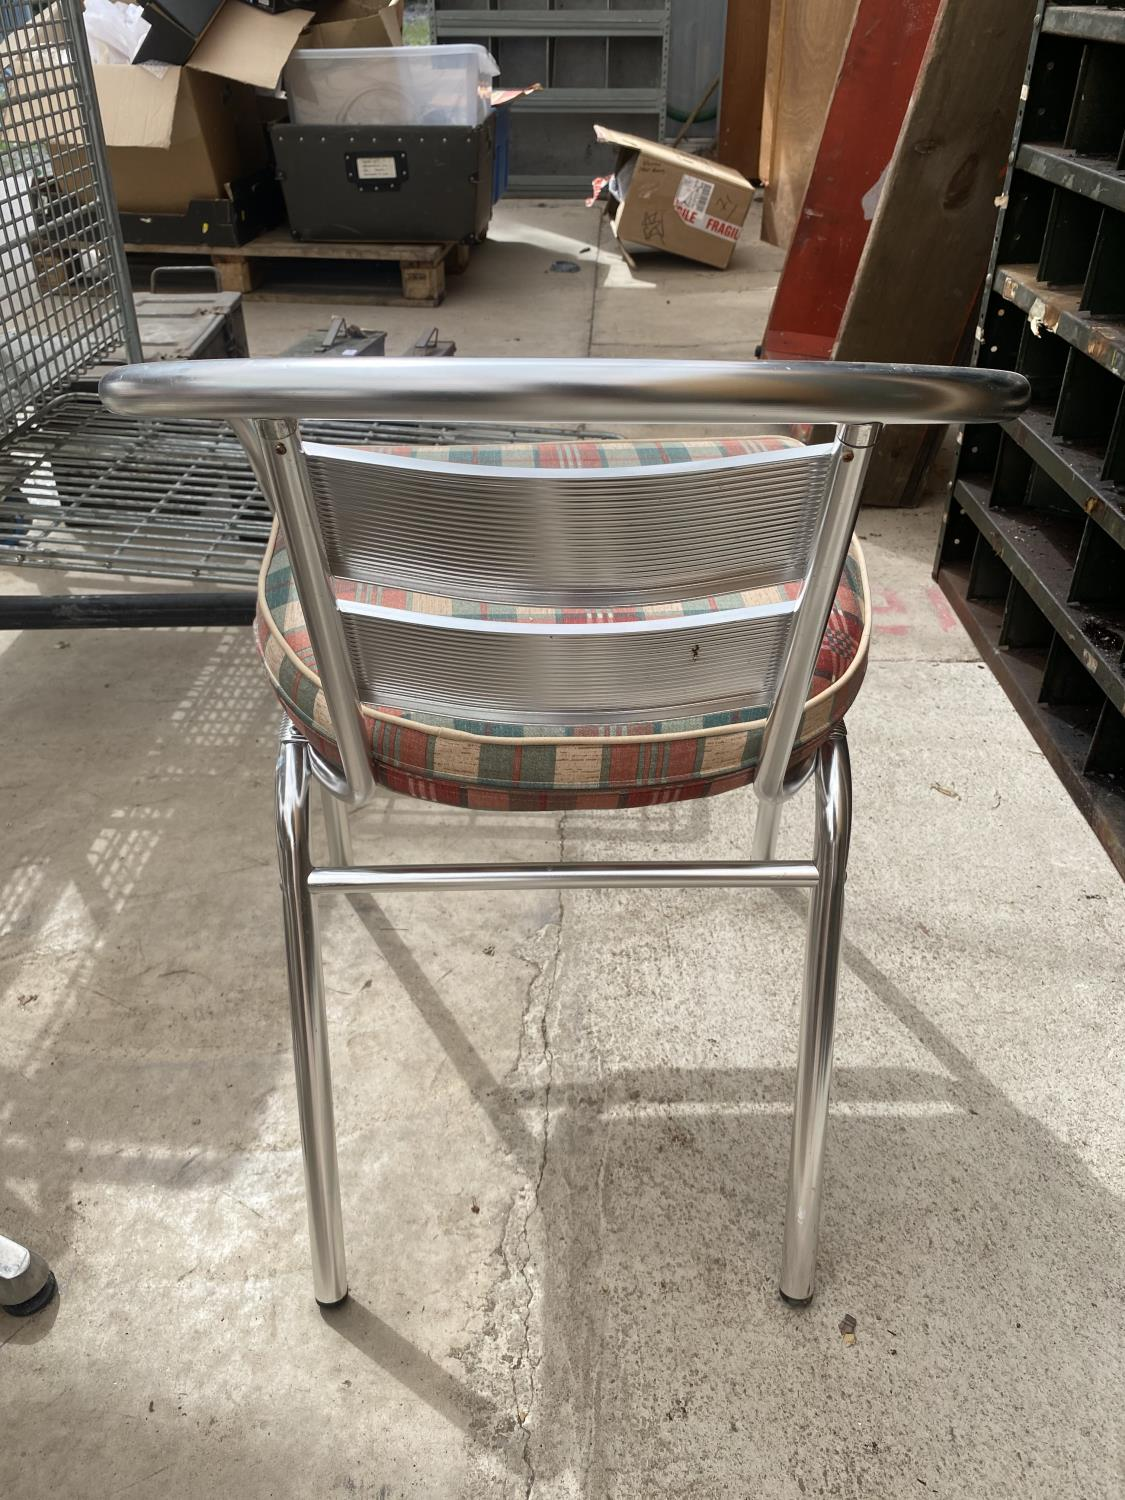 A STAINLESS STEEL BISTRO SET WITH ROUND TABLE AND FOUR CHAIRS - Image 4 of 5